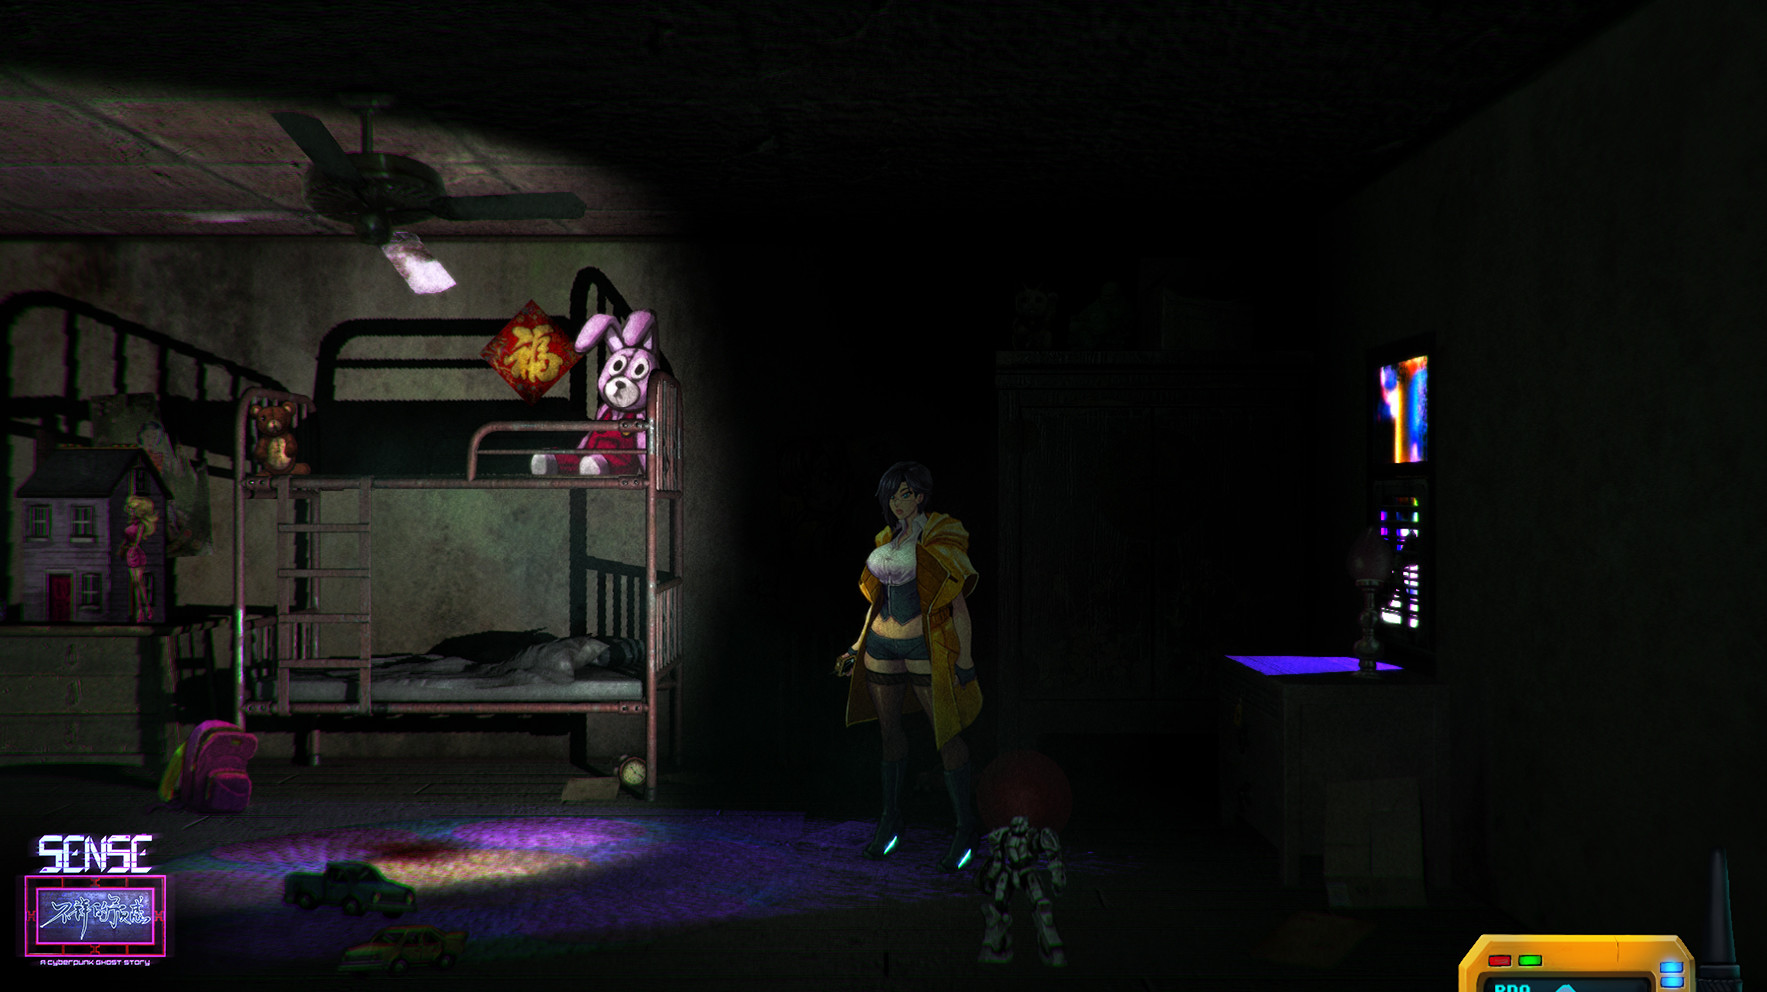 A screen shot from the video game Sense.